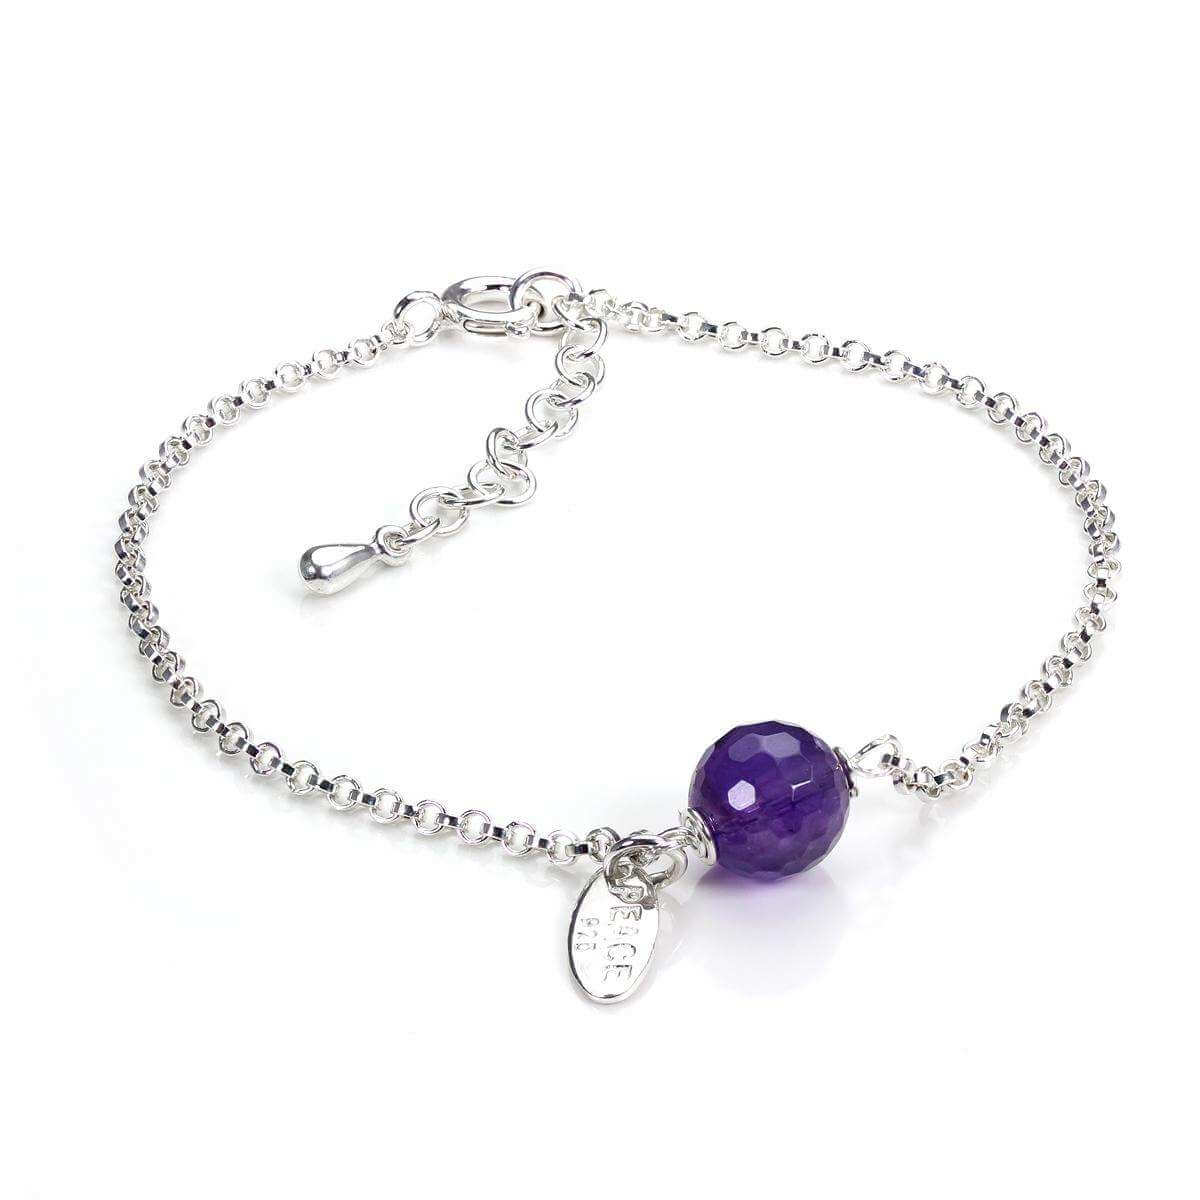 Adjustable Sterling Silver Bracelet with Amethyst Bead and Peace Disc